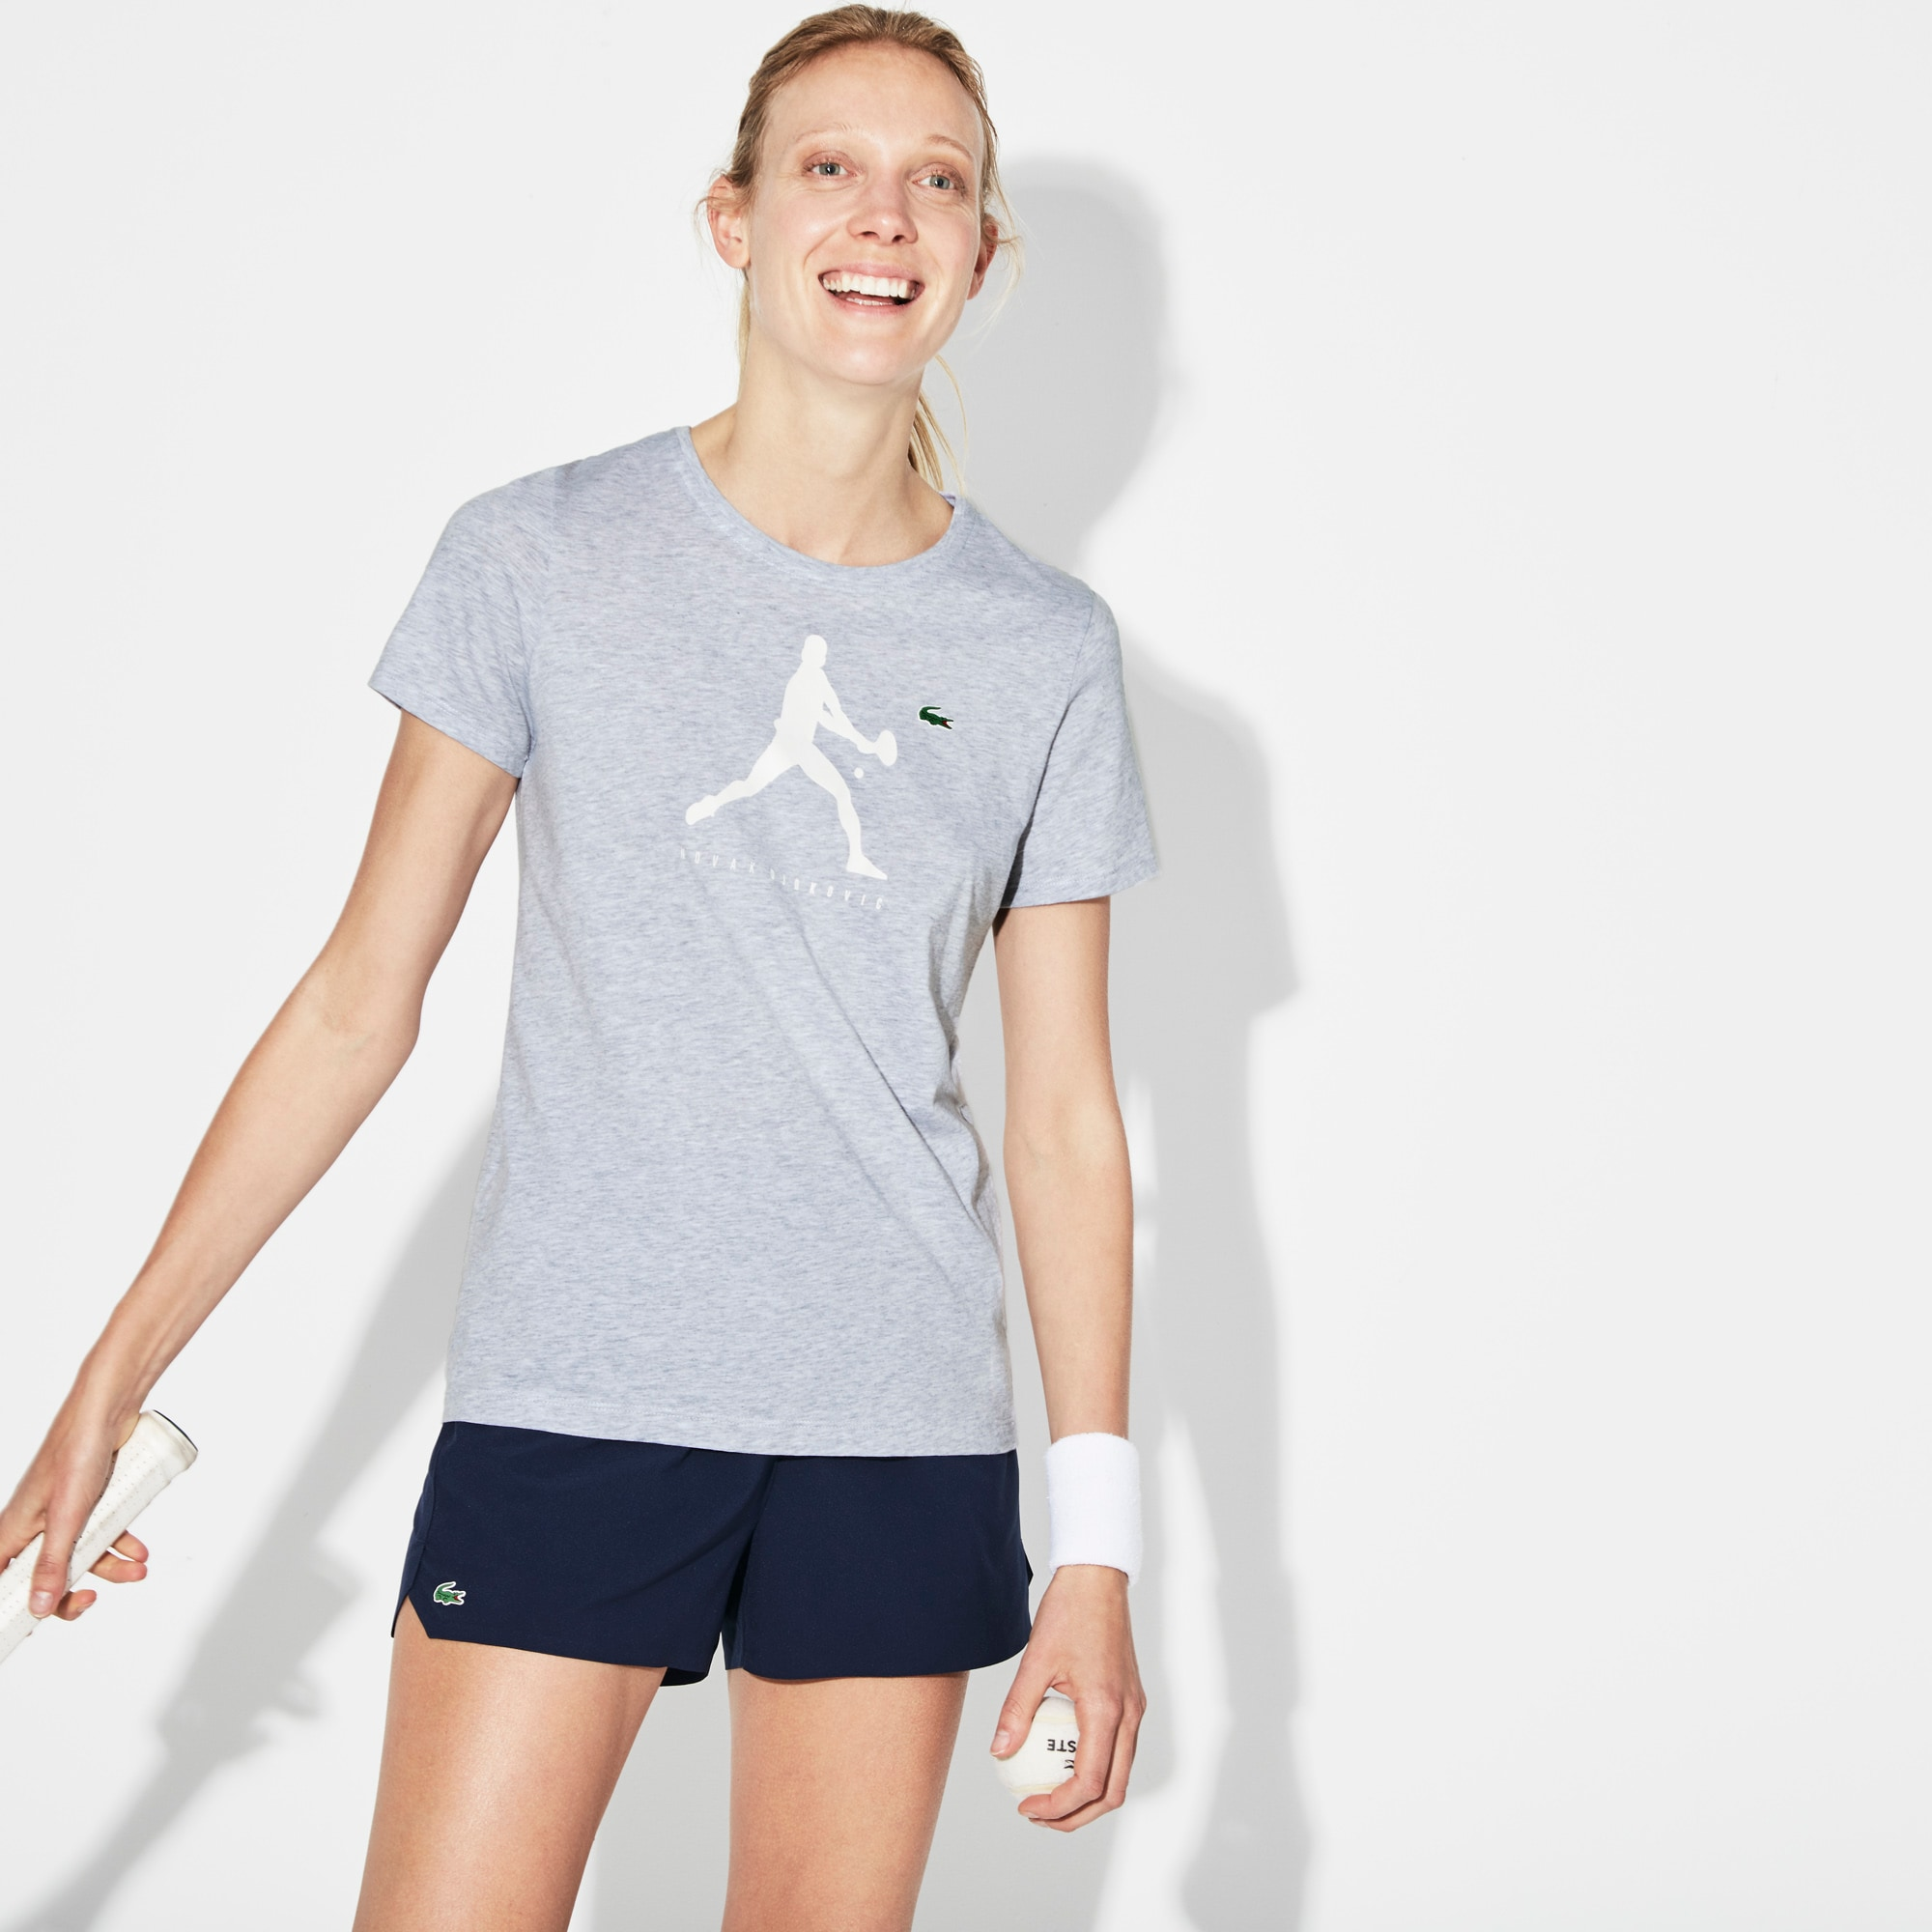 Lacoste Womens SPORT Print T-Shirt - Novak Djokovic Supporter Collection